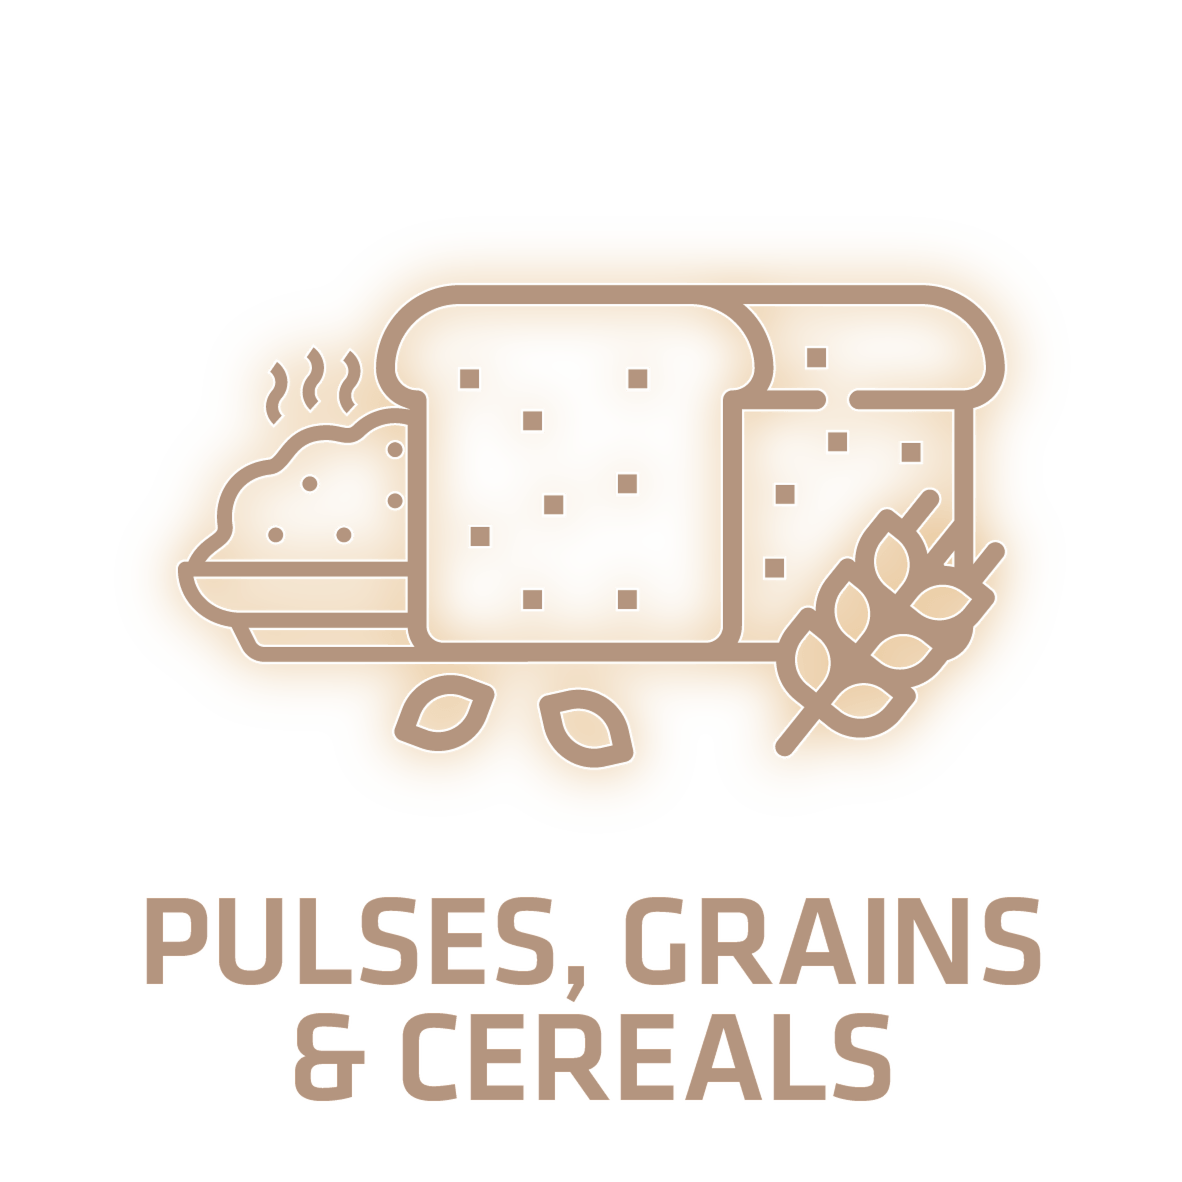 Gulfood pulses grains cereals